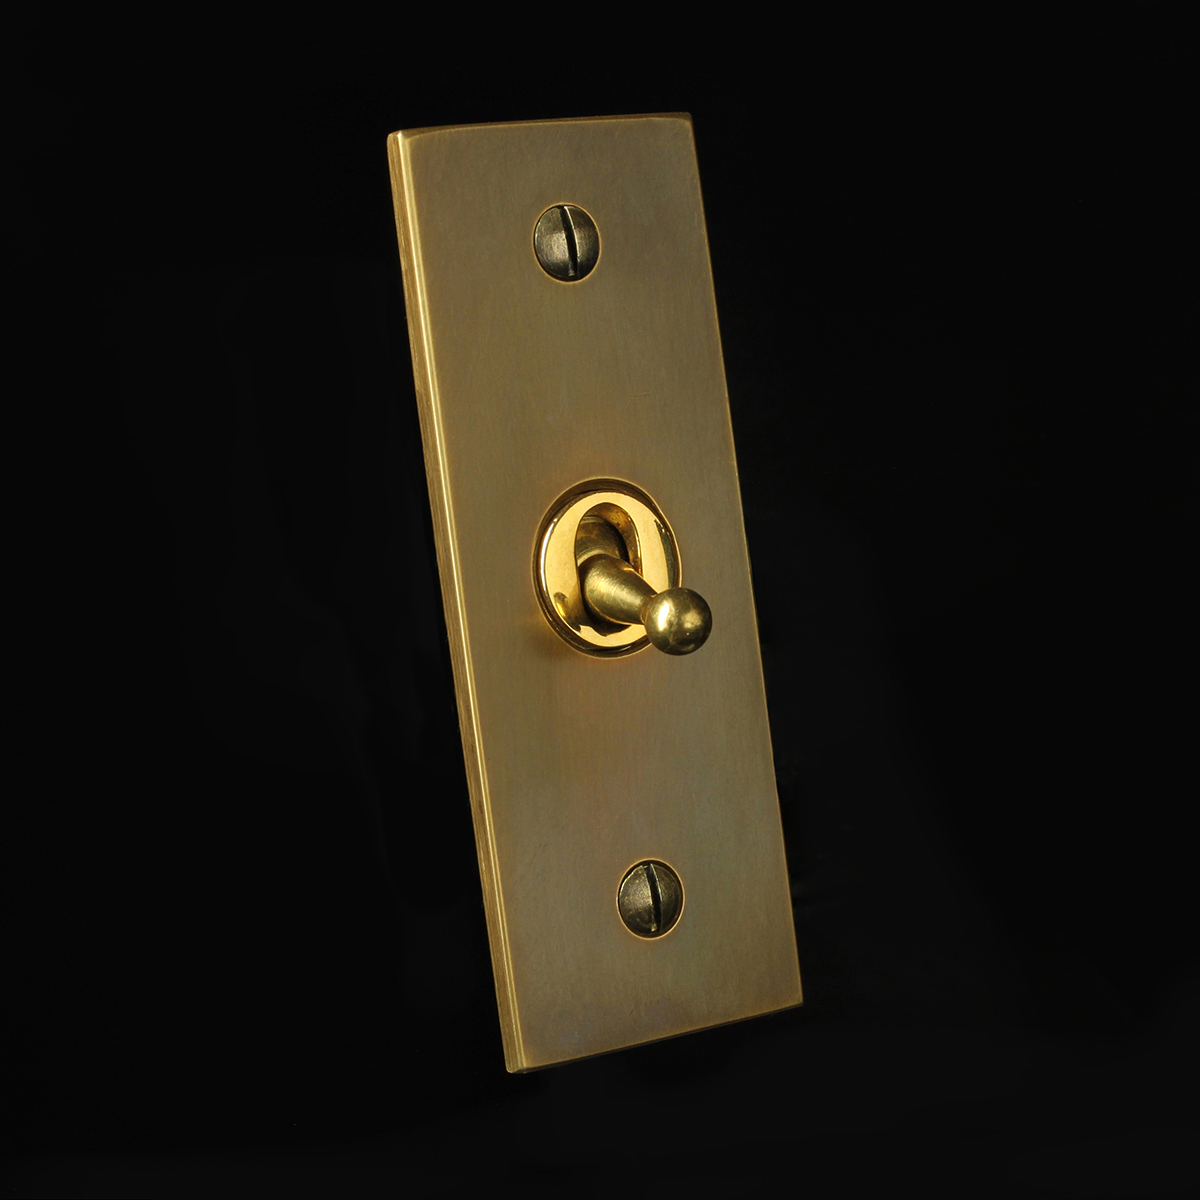 4 antique brass, architrave toggle